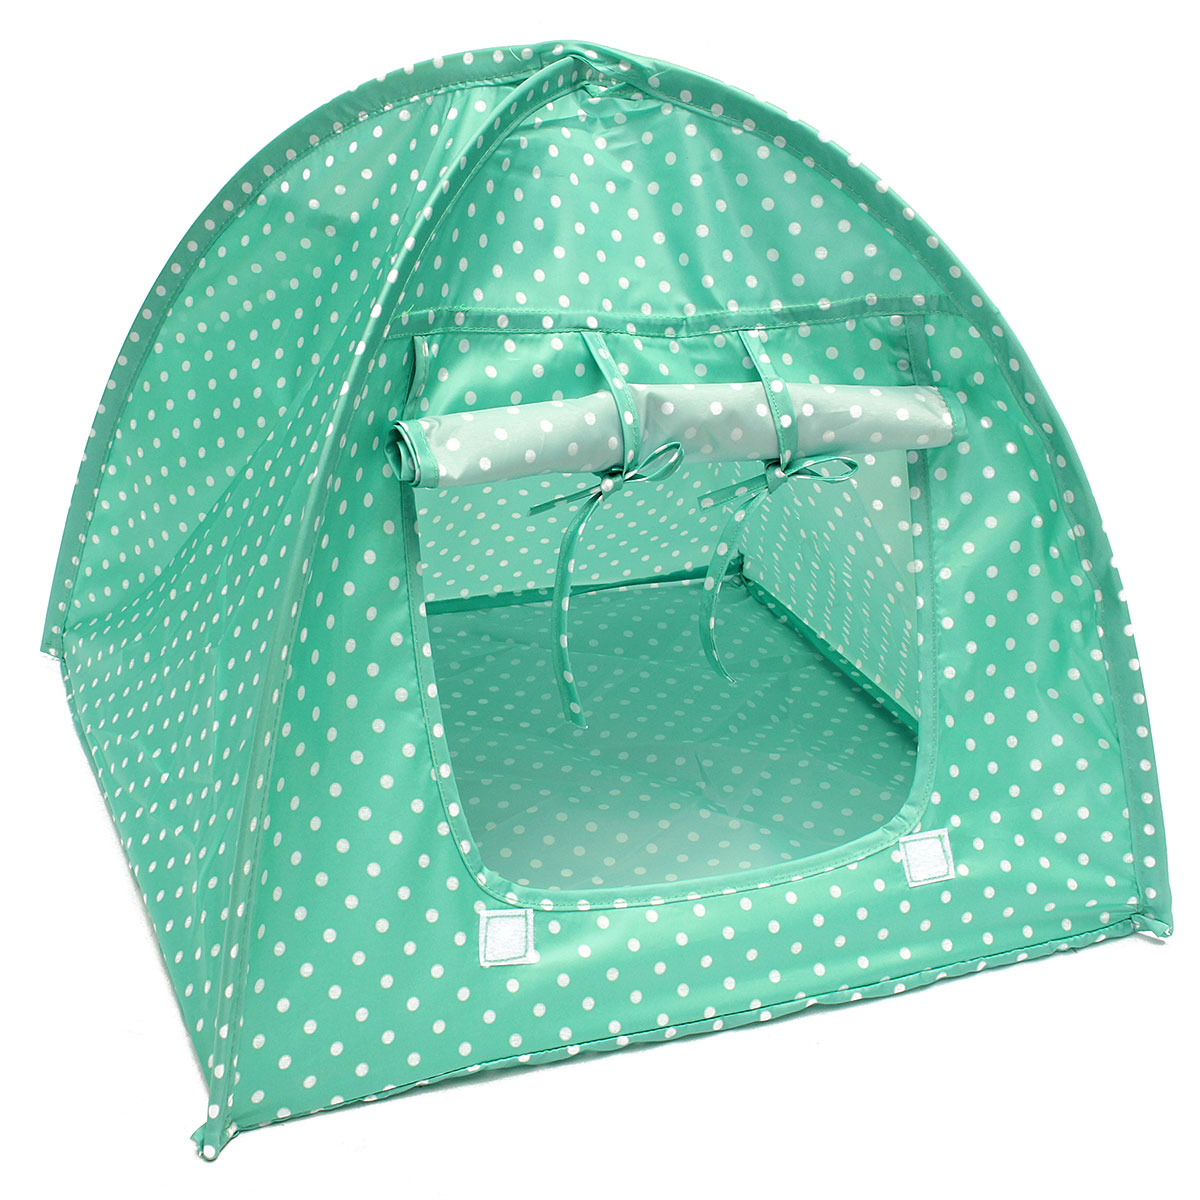 Foldable Babys Tent Game-House Kids Tent Sleeping Dome Camp Waterproof Outdoor Play-Tent Teepee House Wigwam Room